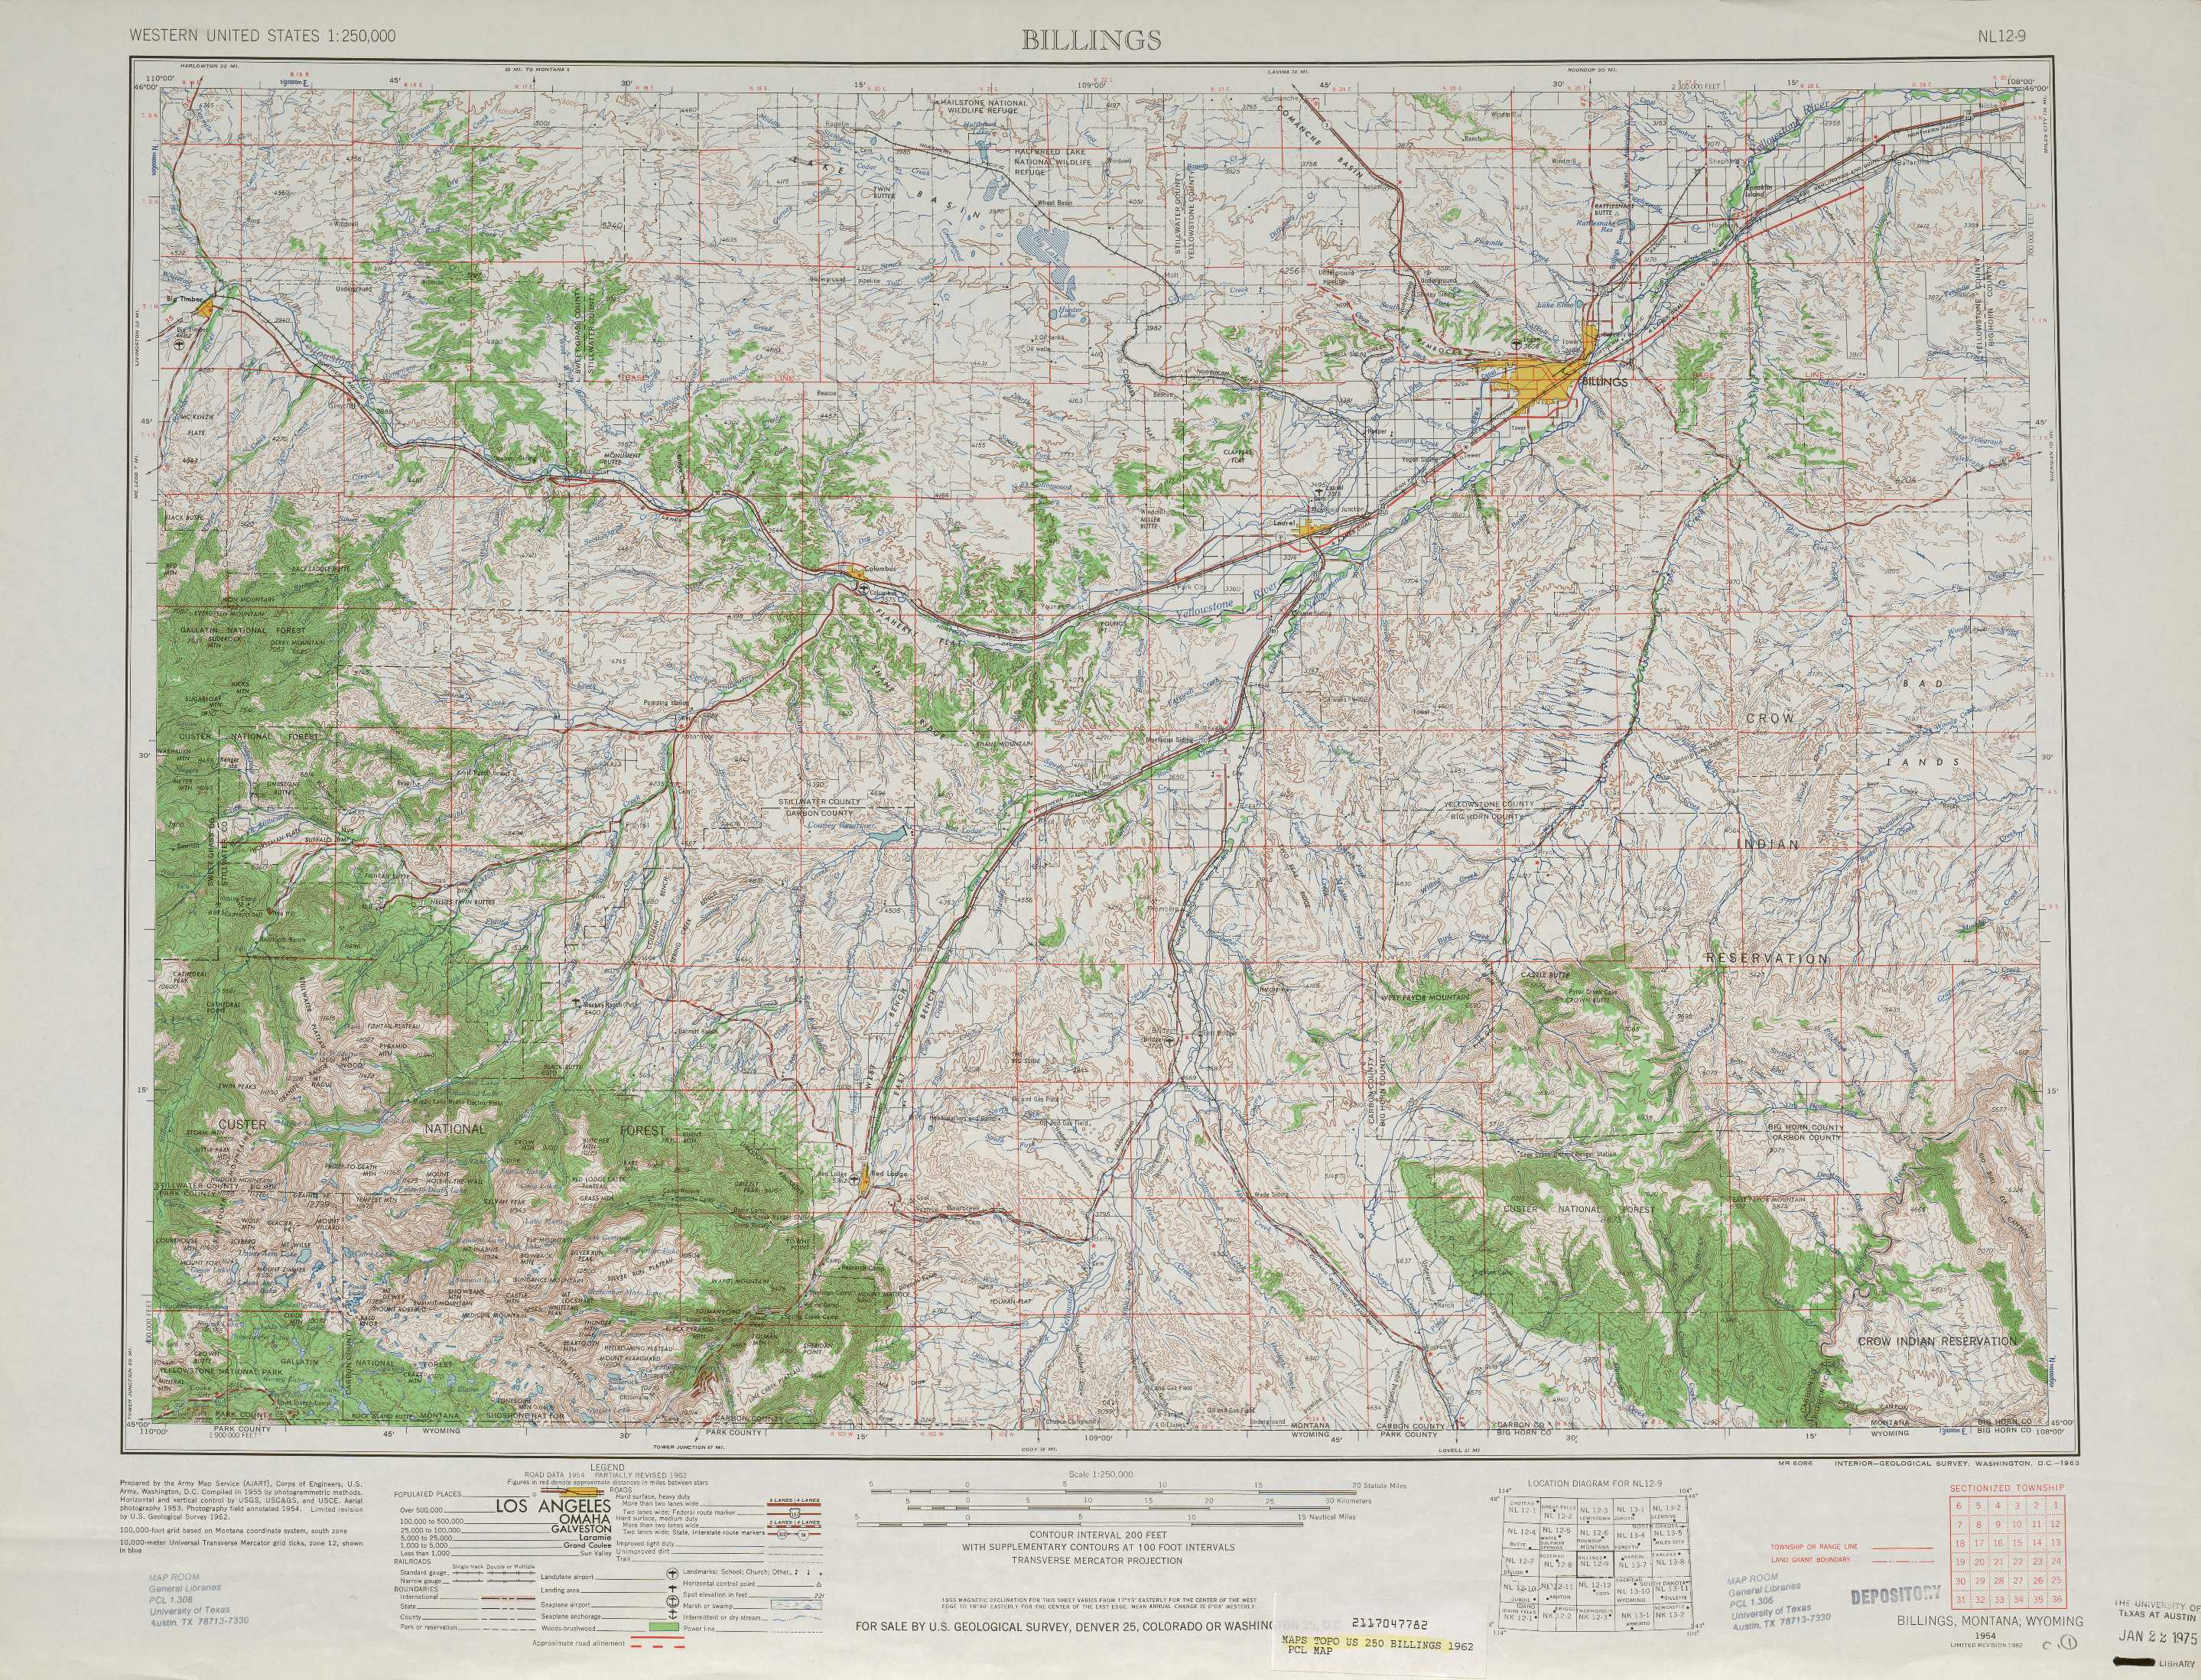 Billings topographic maps MT USGS Topo Quad 45108a1 at 1250000